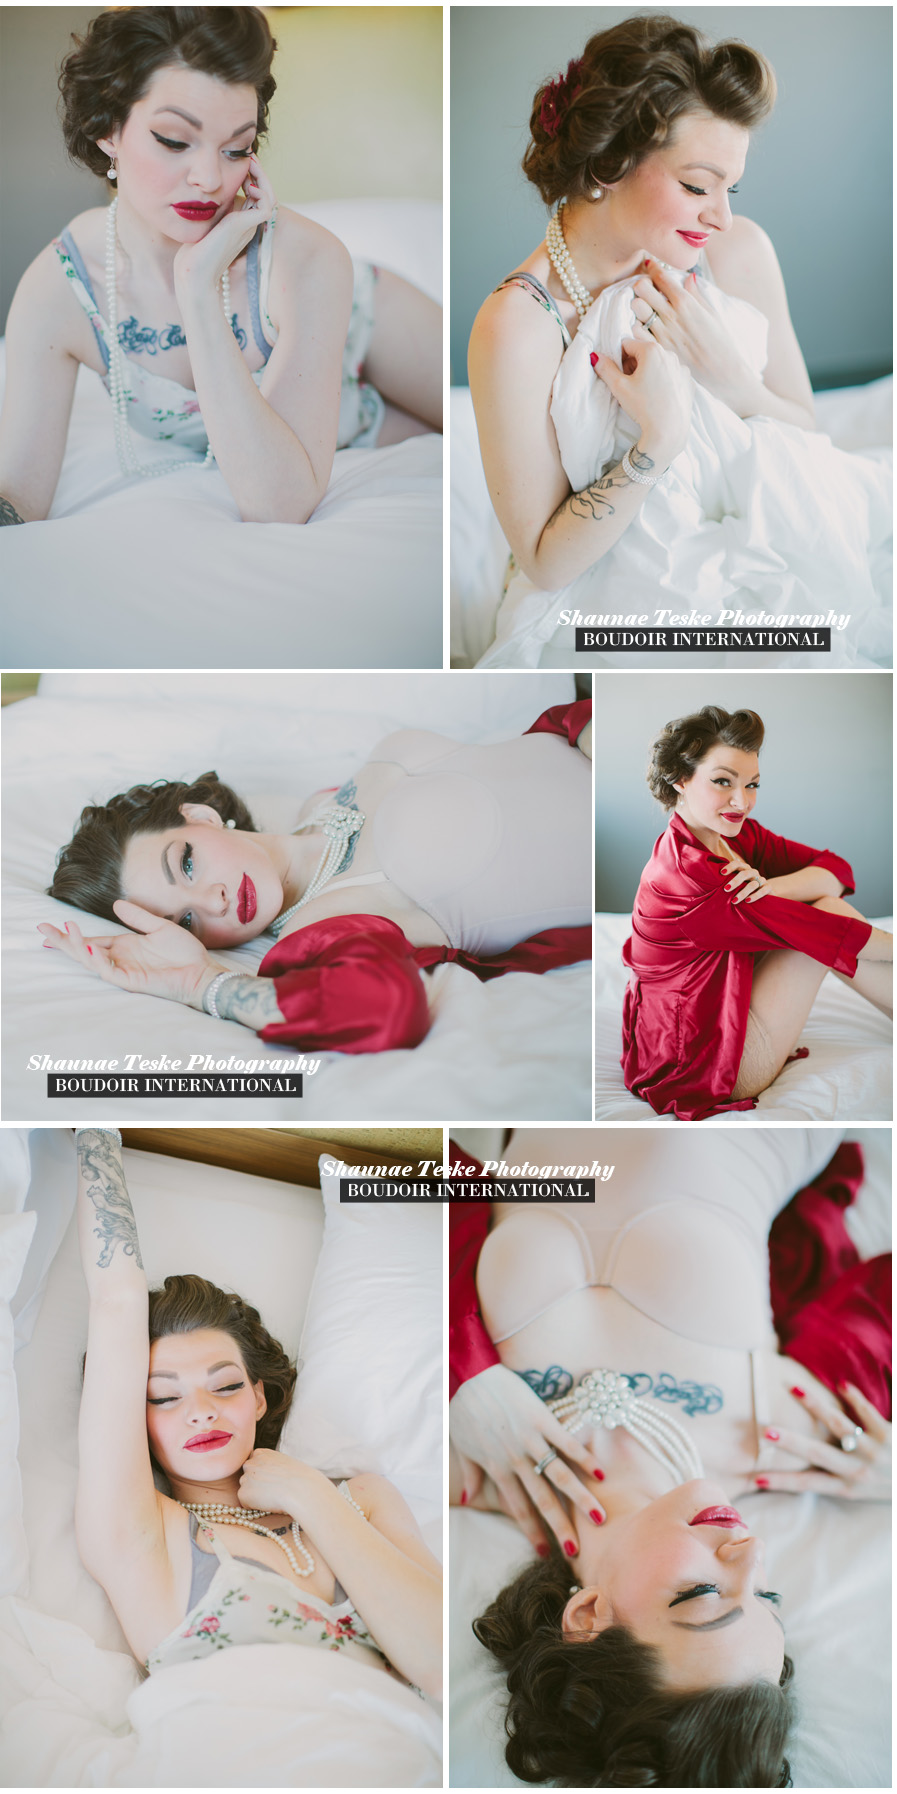 shaunaeteskeboudoir Shaunae Teske Photography | Real Boudoir | Green Bay, Wisconsin Boudoir Photographer